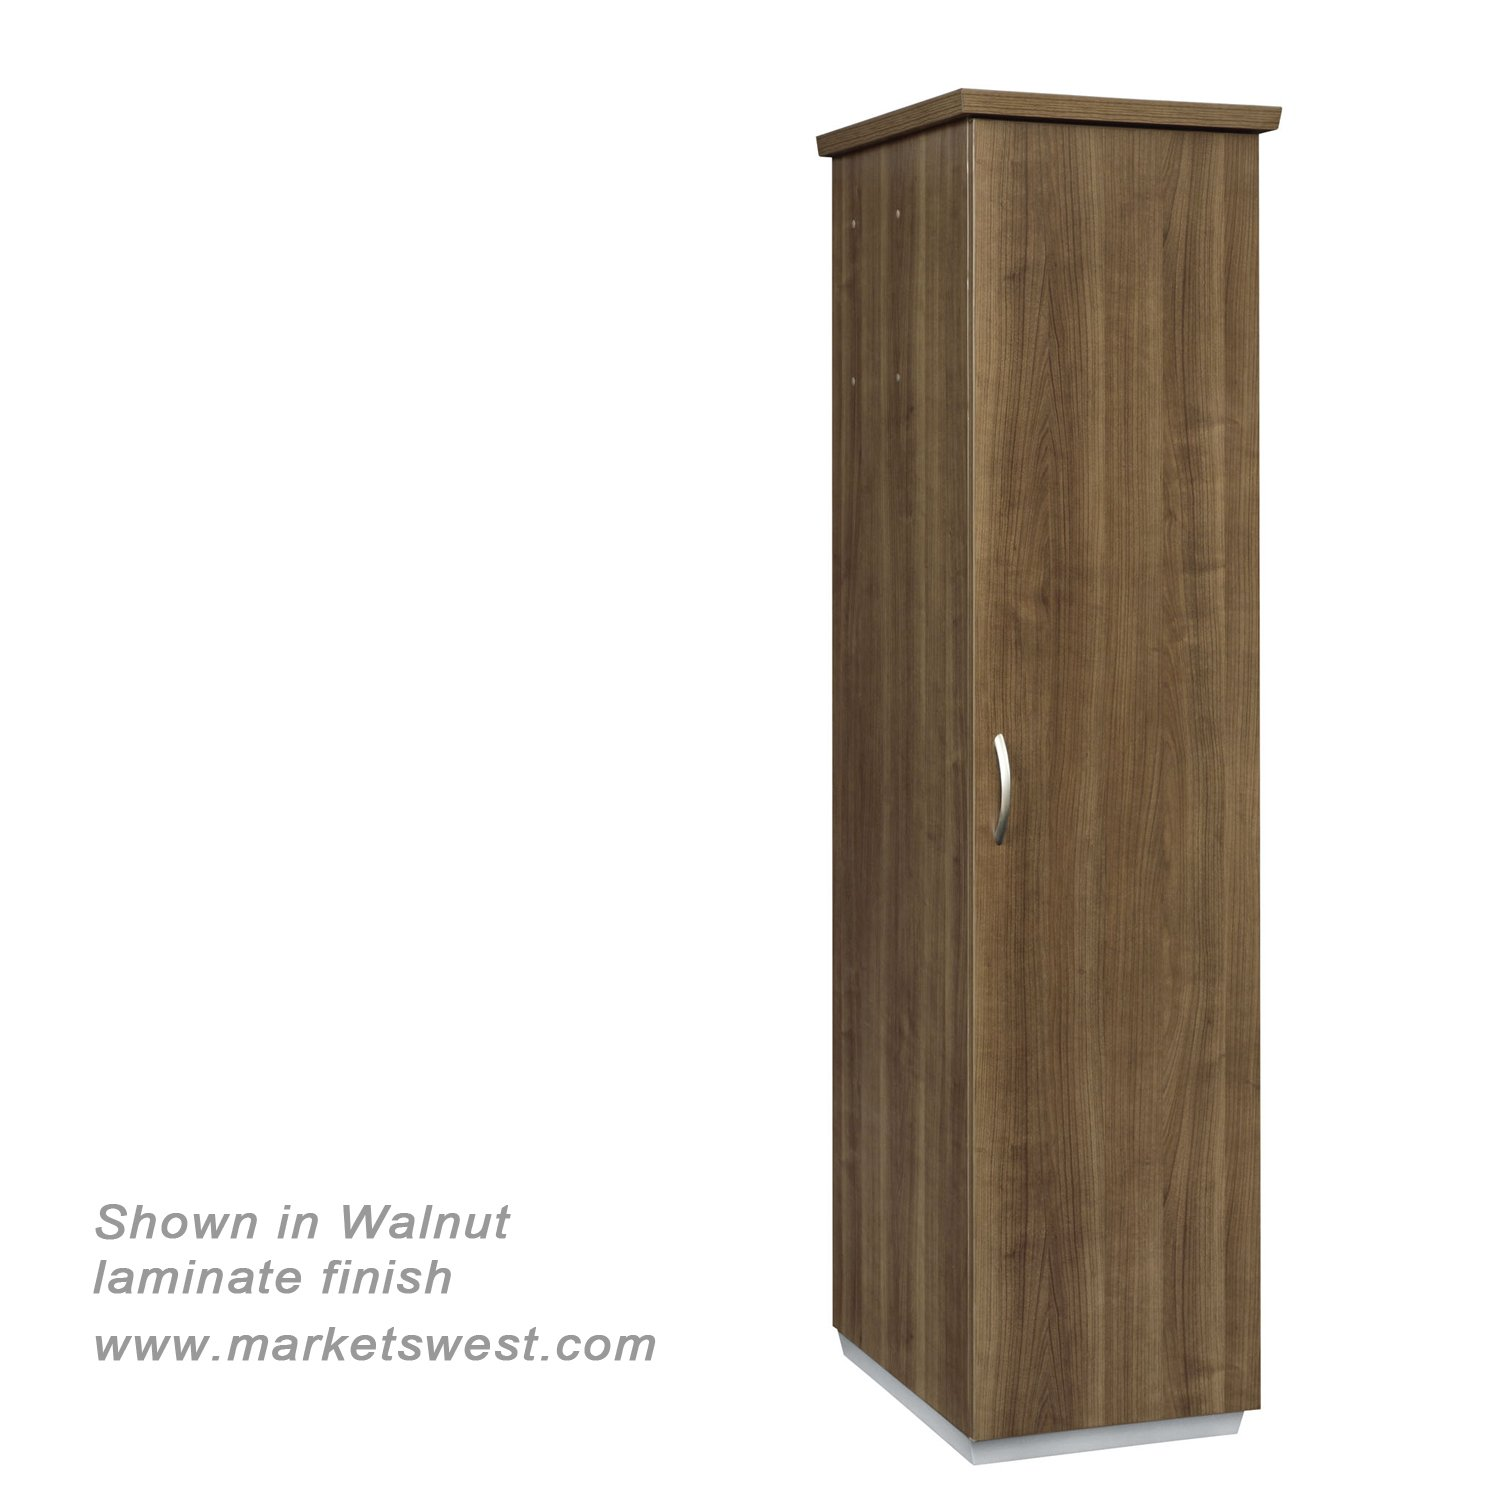 image cabinets images wardrobe gallery ws cabinet office storage series details resources specialty